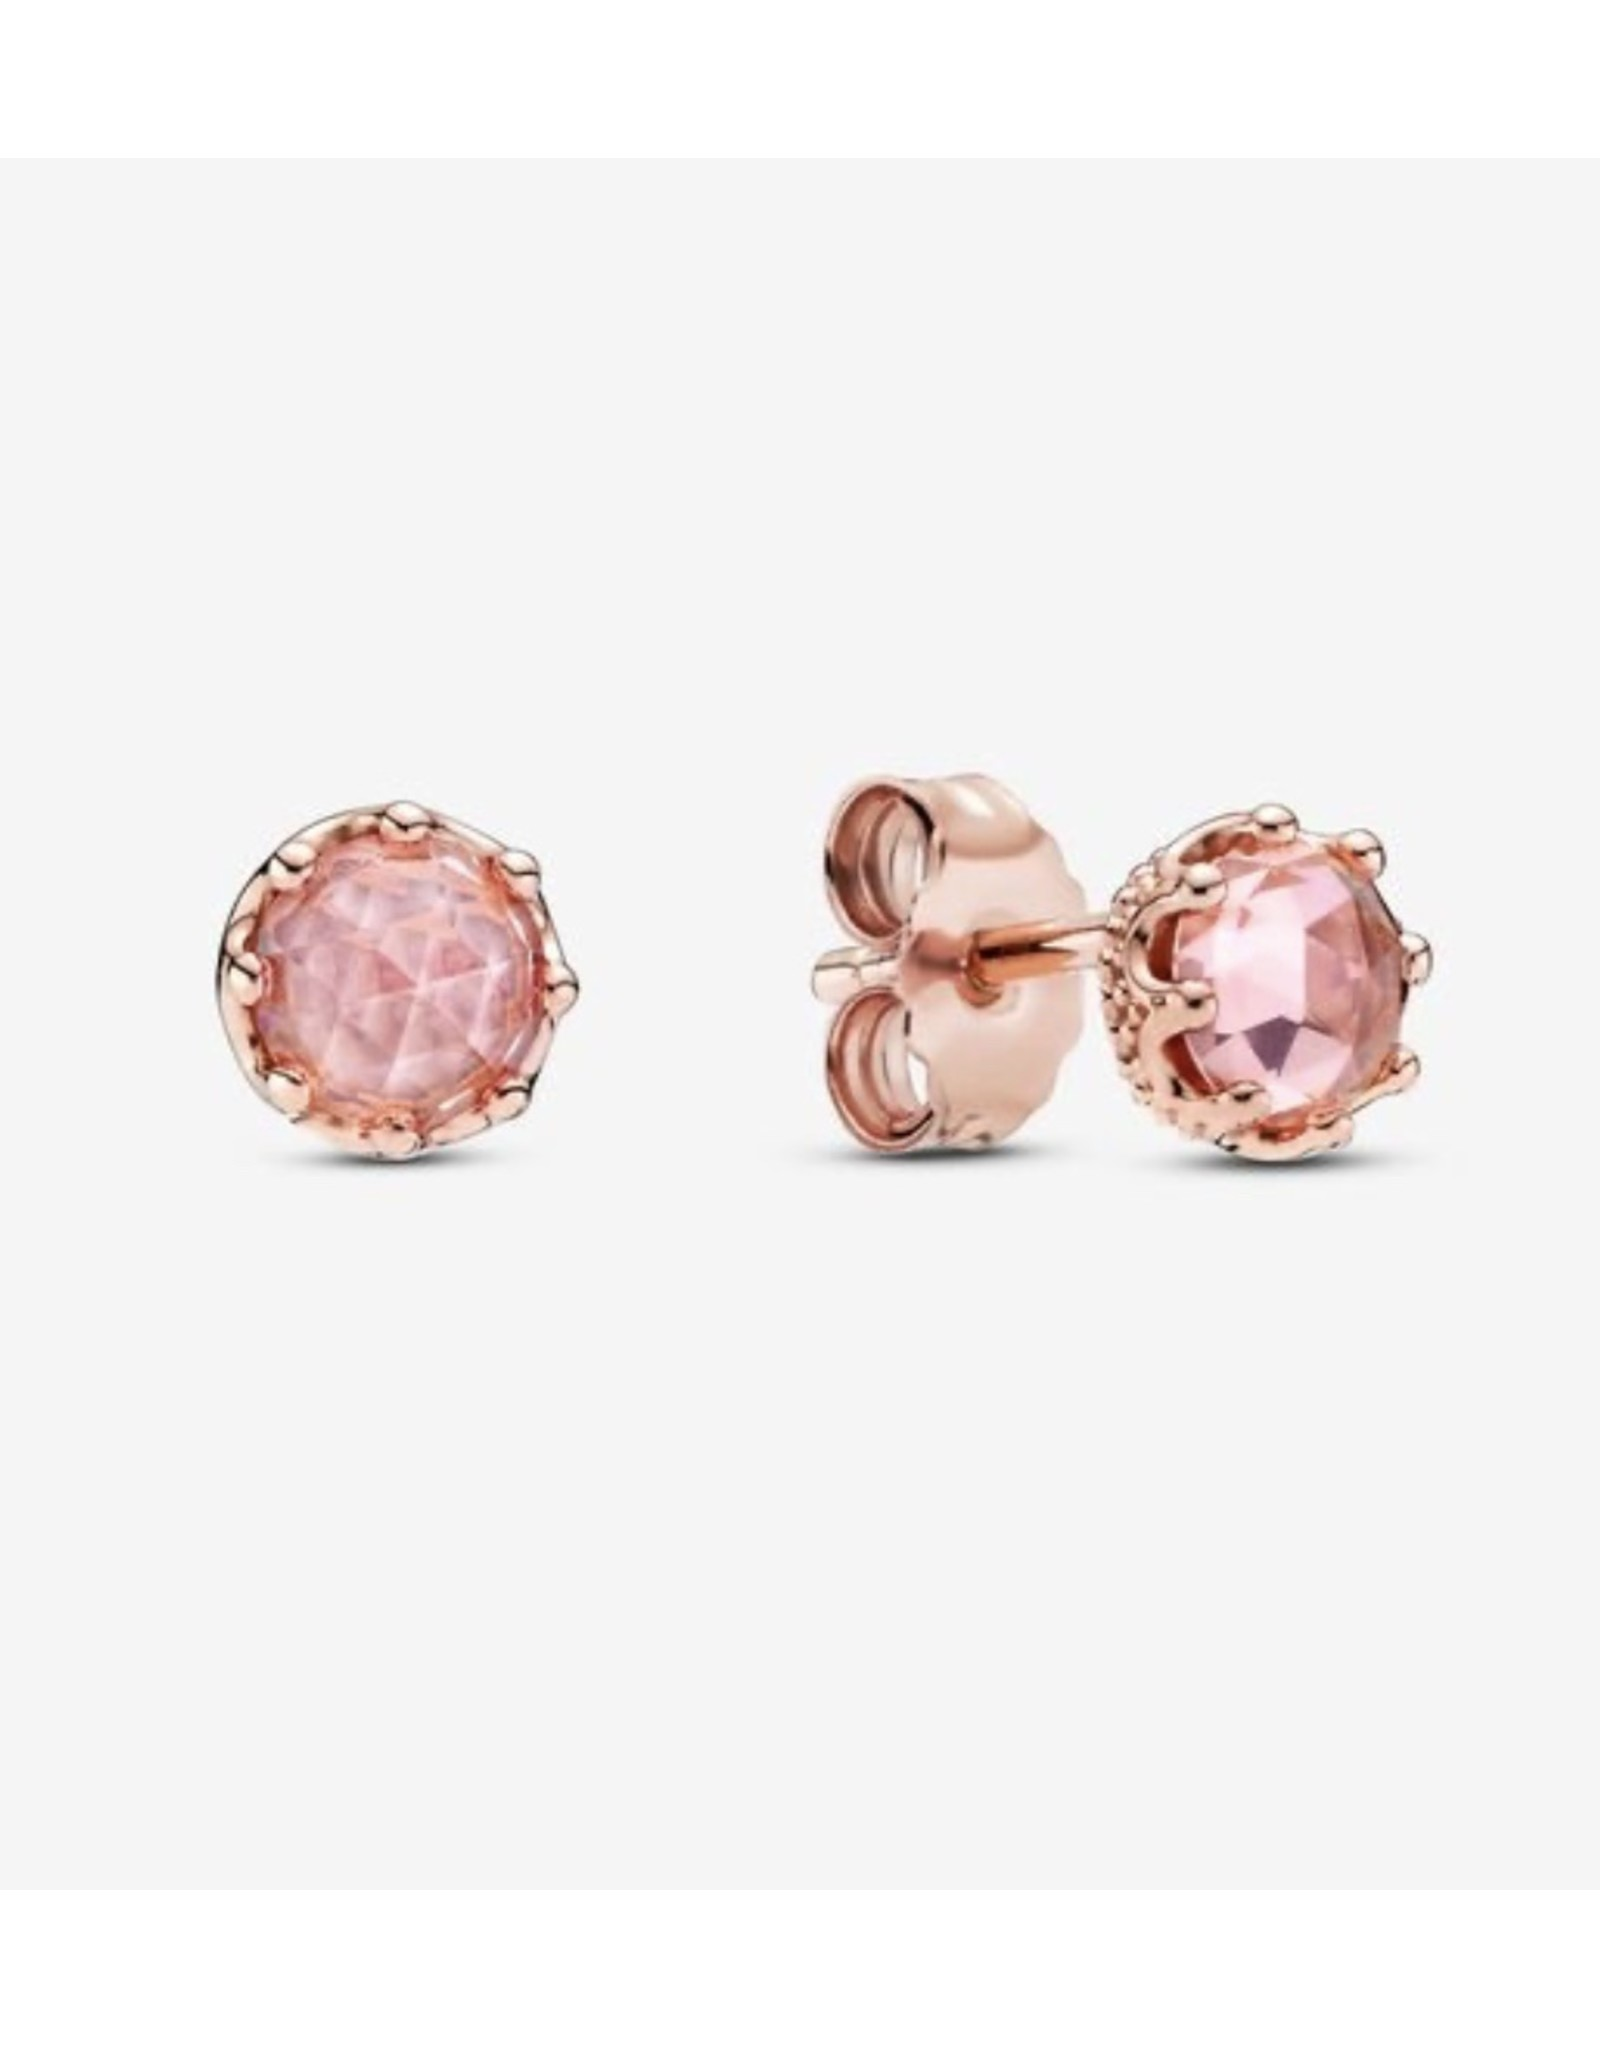 Pandora Pandora Earrings,288311C01, Sparkling Crown Rose Gold, Pink Crystals